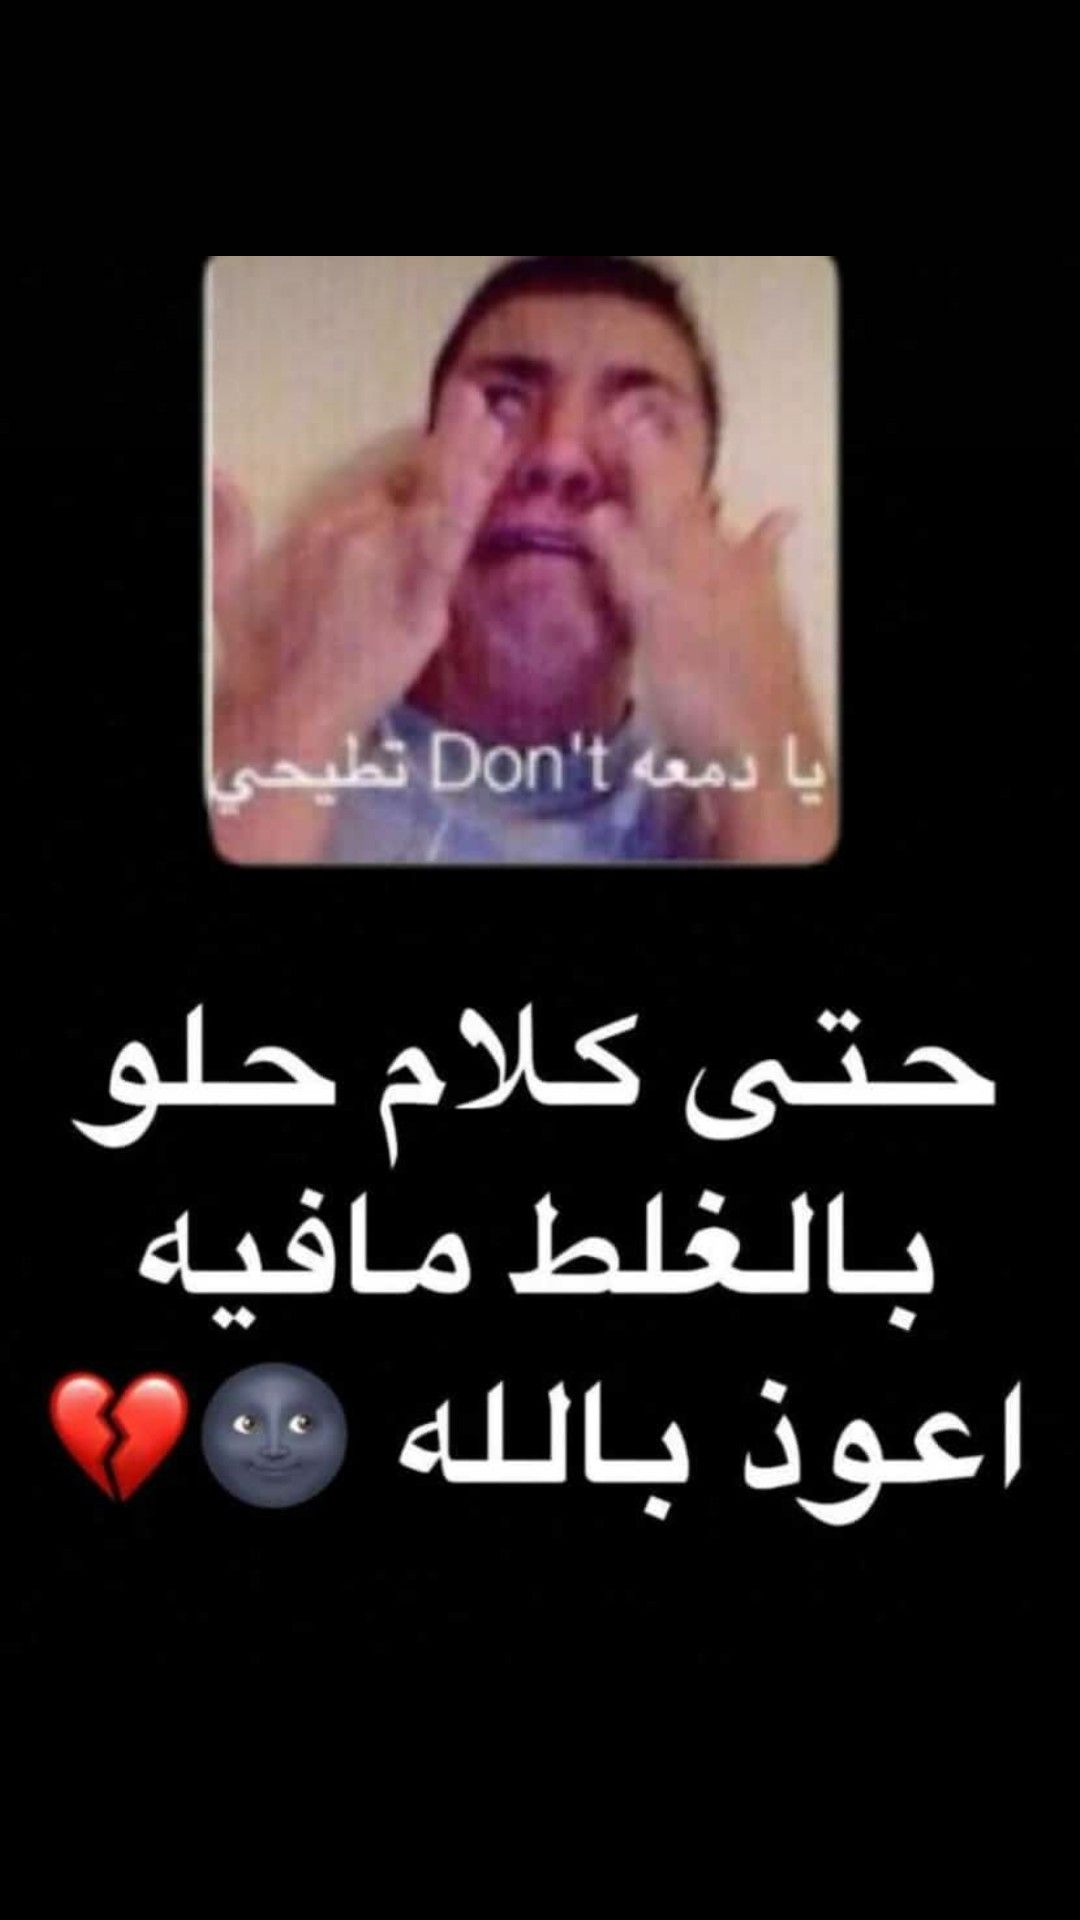 Pin By Jana Wael Jojo03 On استهبال Funny Study Quotes Funny Quotes For Instagram Funny Words